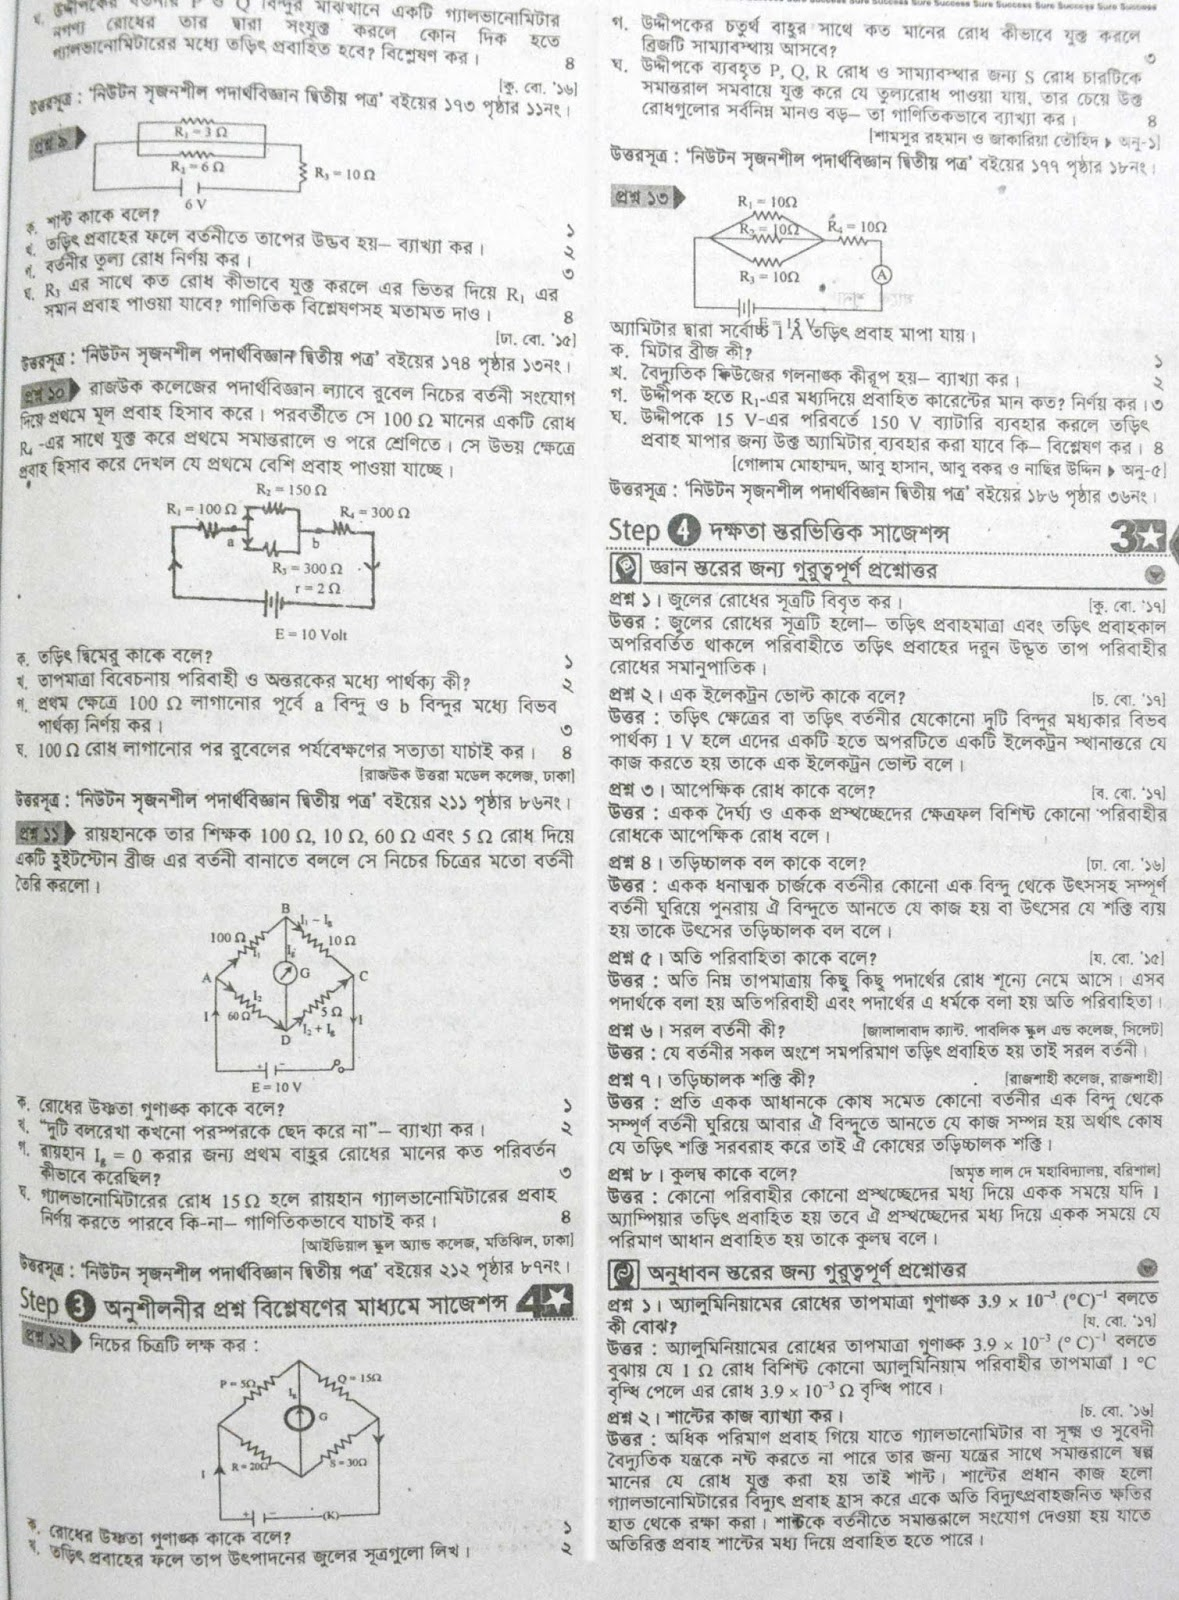 hsc Physics 2nd Paper suggestion, exam question paper, model question, mcq question, question pattern, preparation for dhaka board, all boards